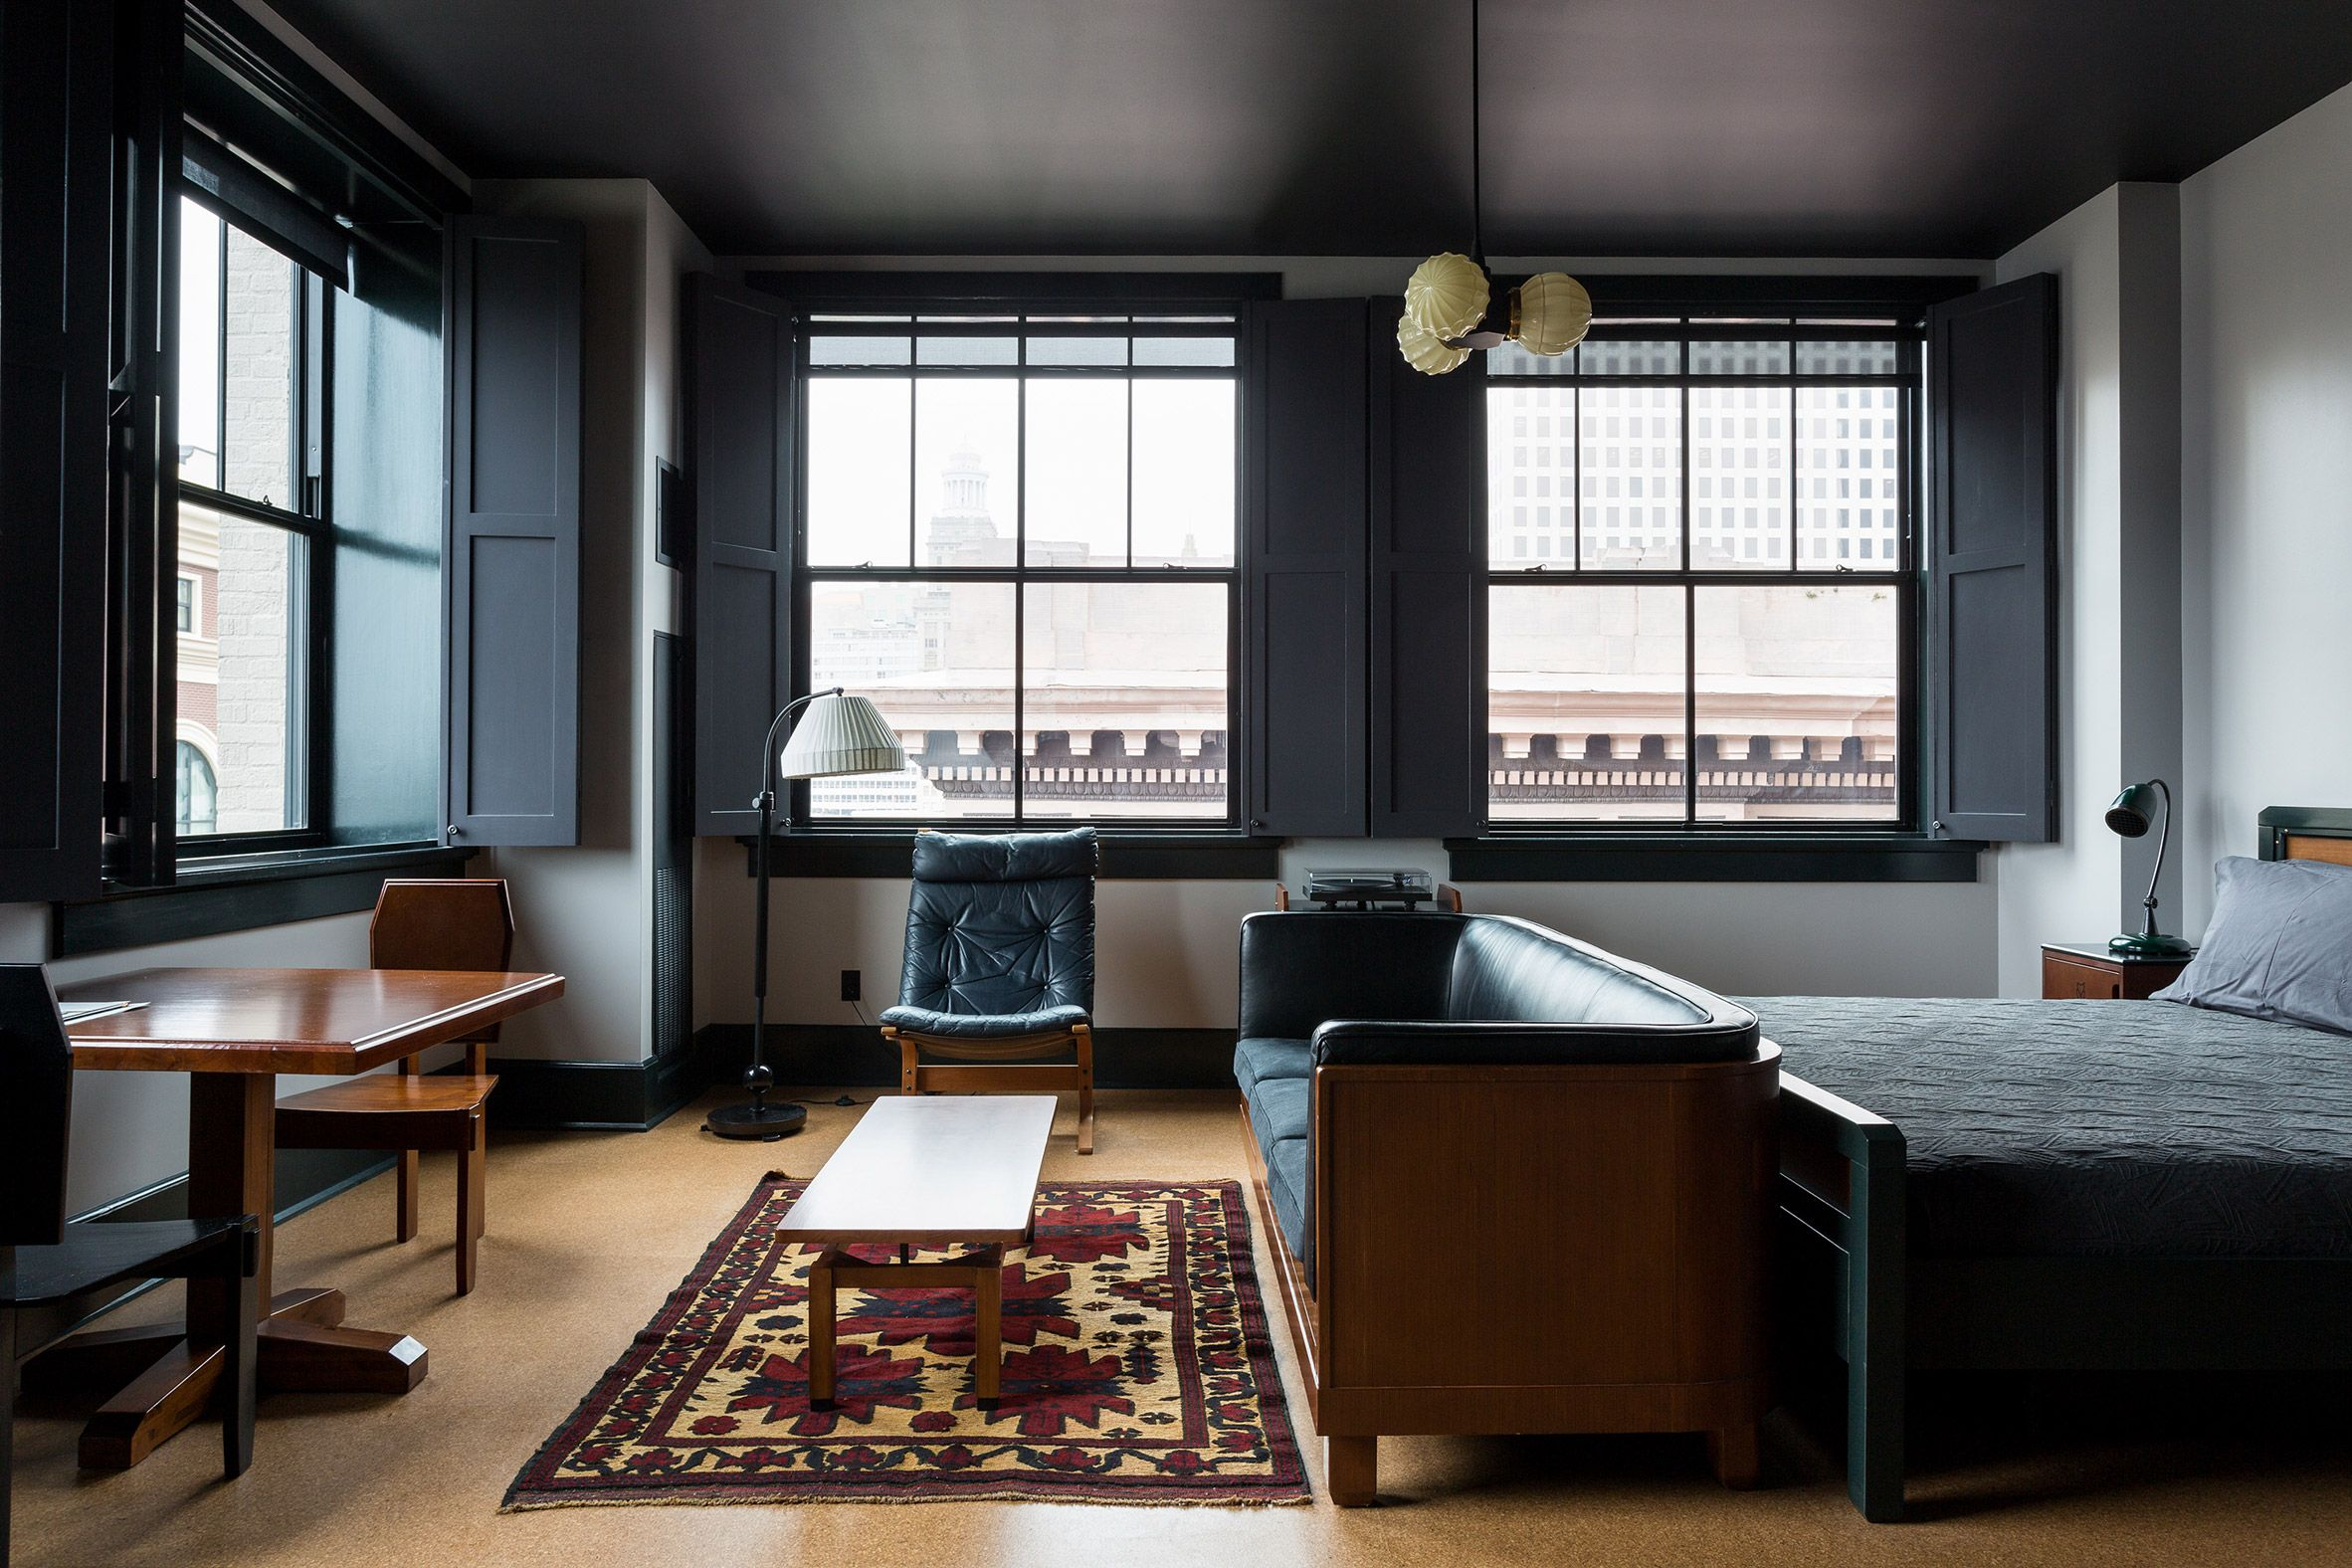 New York Based Roman Williams Was Responsible For The Interior Design And Used Many Of Ace Hotel S Signatures Like So Hotel Room Design Ace Hotel Interior